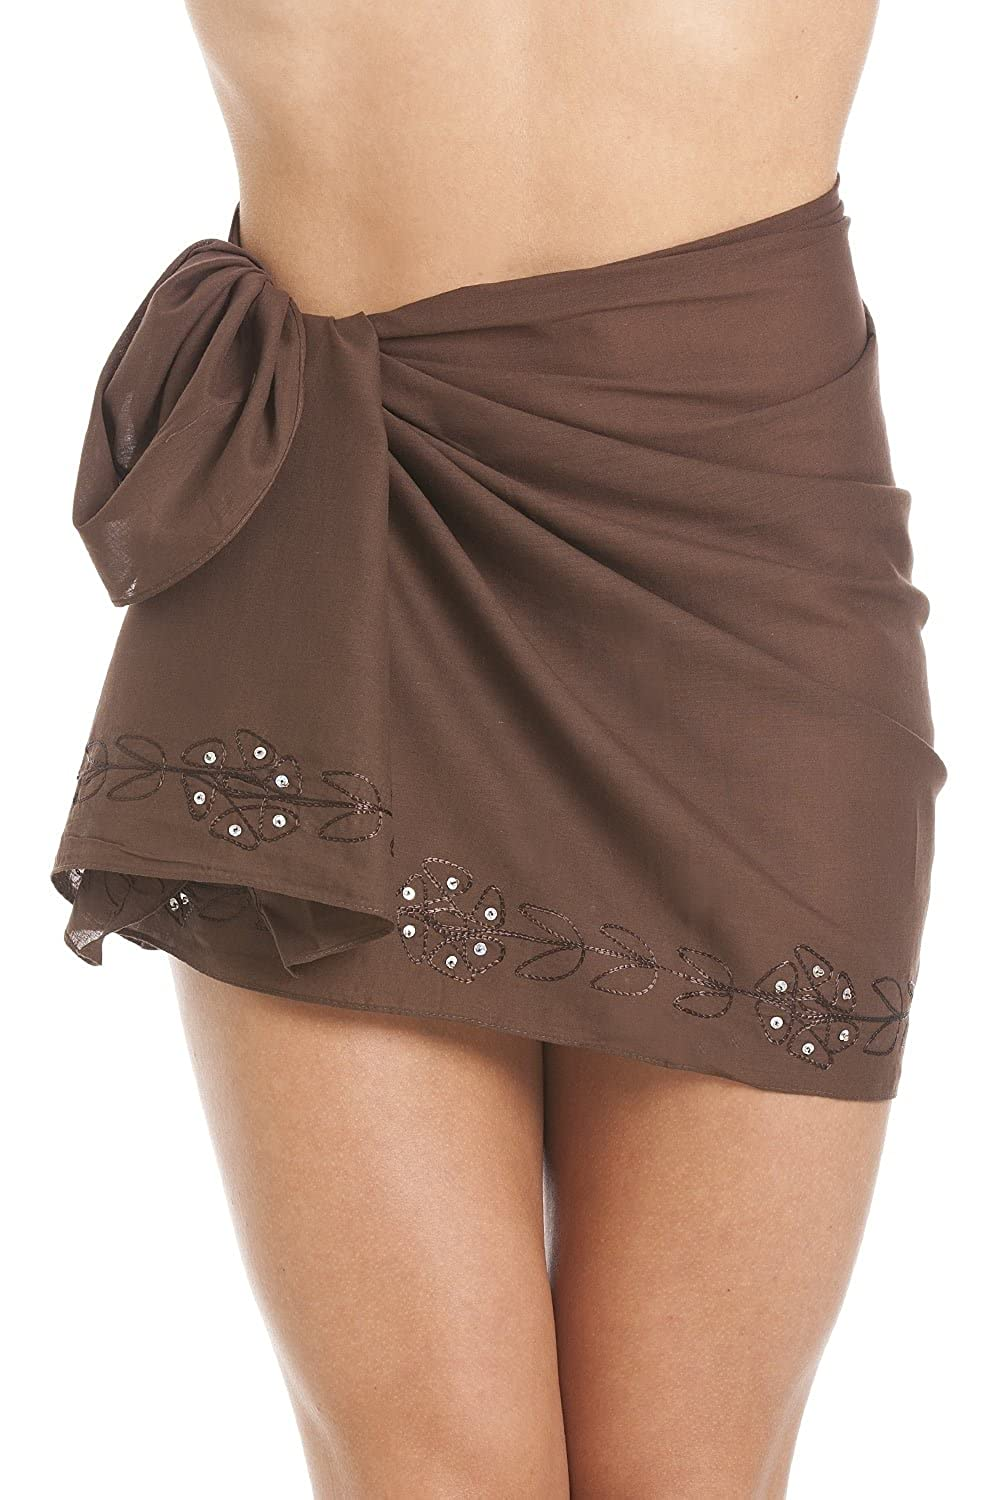 Camille Womens Ladies Brown Short Length Sarong with Floral Embroidery